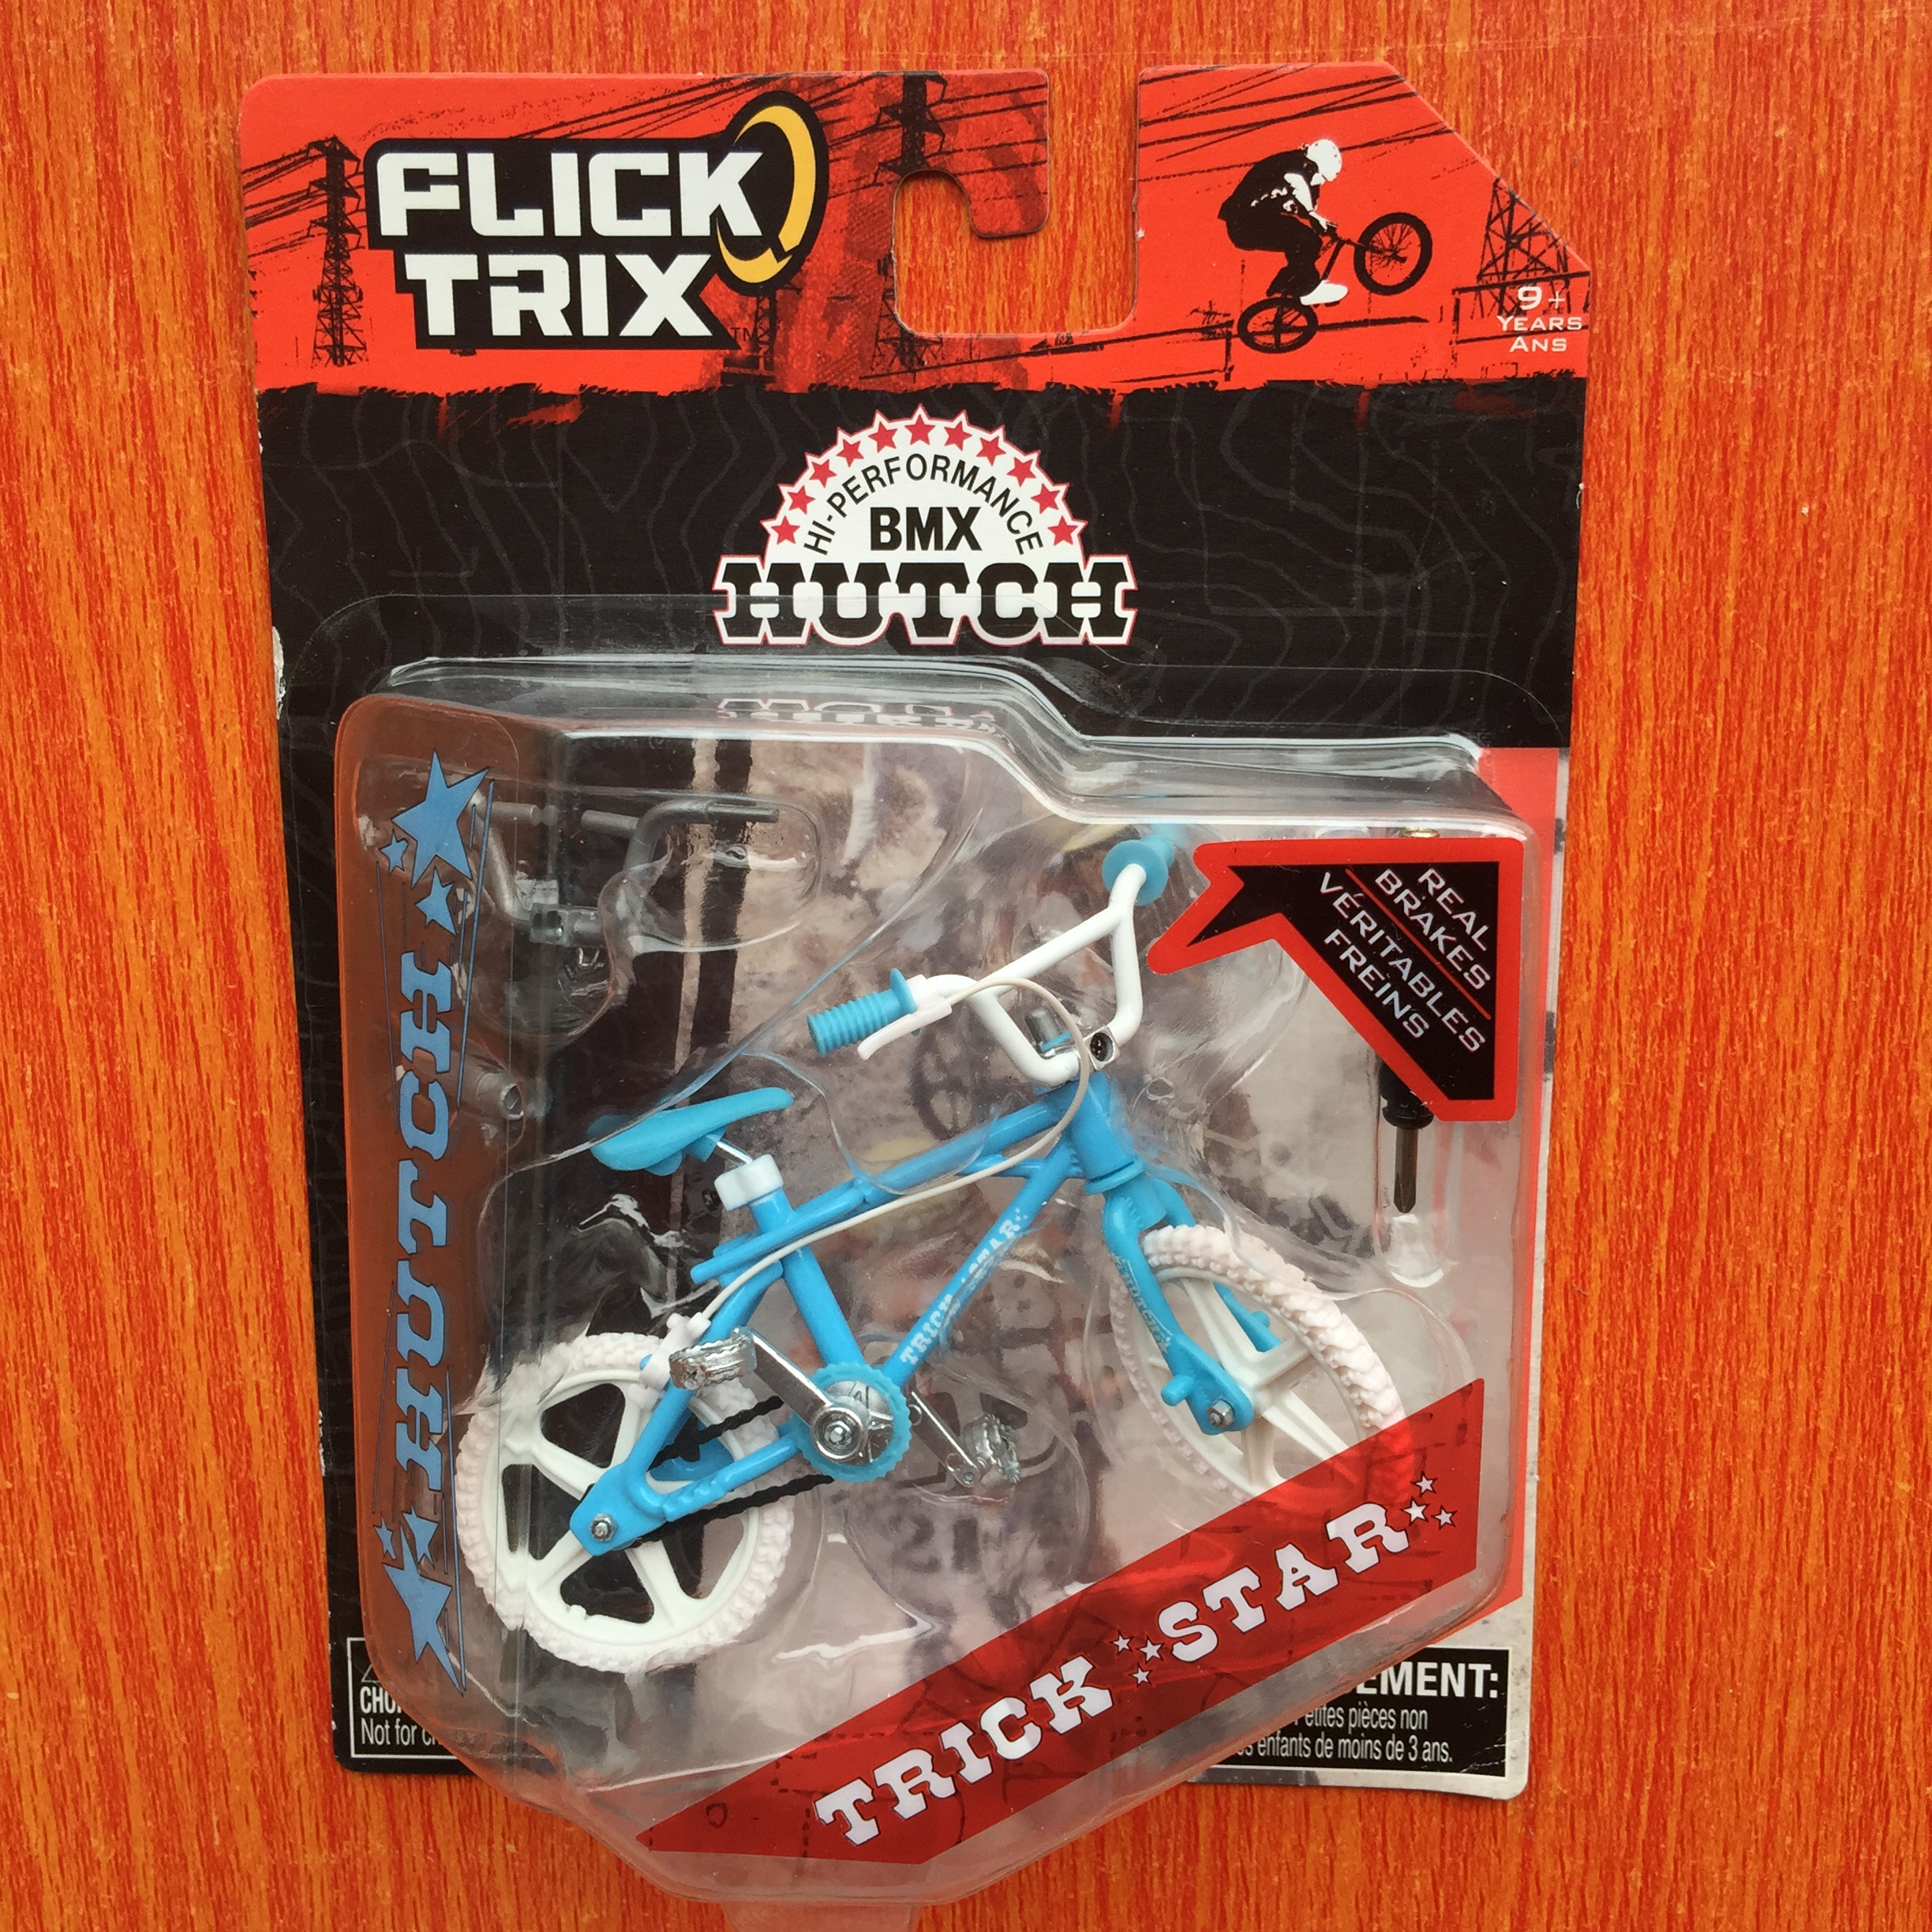 High Quality Mini Flick Trix Finger Bikes Bmx Toys For Children Boys Fun Gift FSB Bicycle Collector's